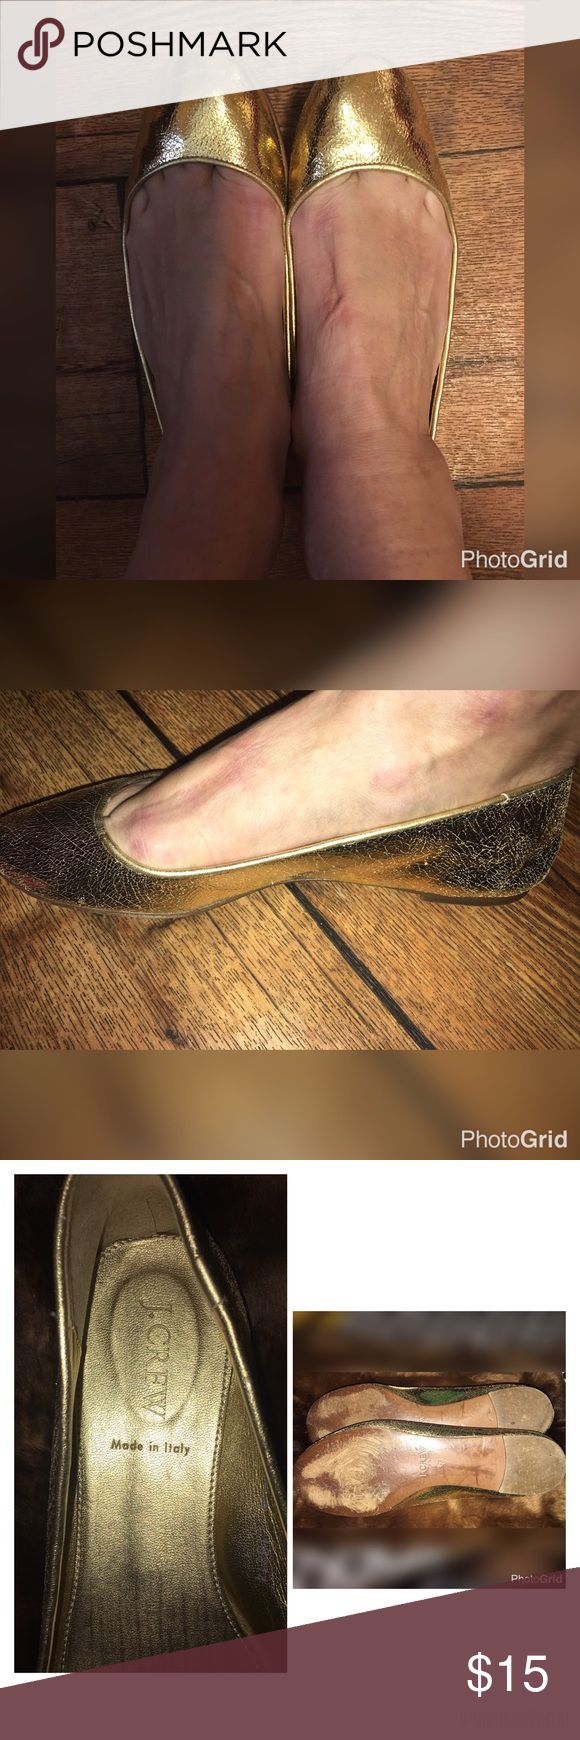 NWOT J CREW GOLD BALLET FLATS SIZE 7❤GORGEOUS THESE ❤J CREW ❤BALLET FLATS ARE A ❤BRILLIANT GOLD ❤AND HAVE A LEATHER SOLE BOTTOM❤THEY ARE A SIZE 7 AND WERE ONLY WORN A FEW TIMES!❤️❤️BEAUTIFUL AND PERFECT FOR A PRETTY DRESS OR PAIR OF JEANS/LEGGINGS❤❤❤ J. Crew Shoes Flats & Loafers